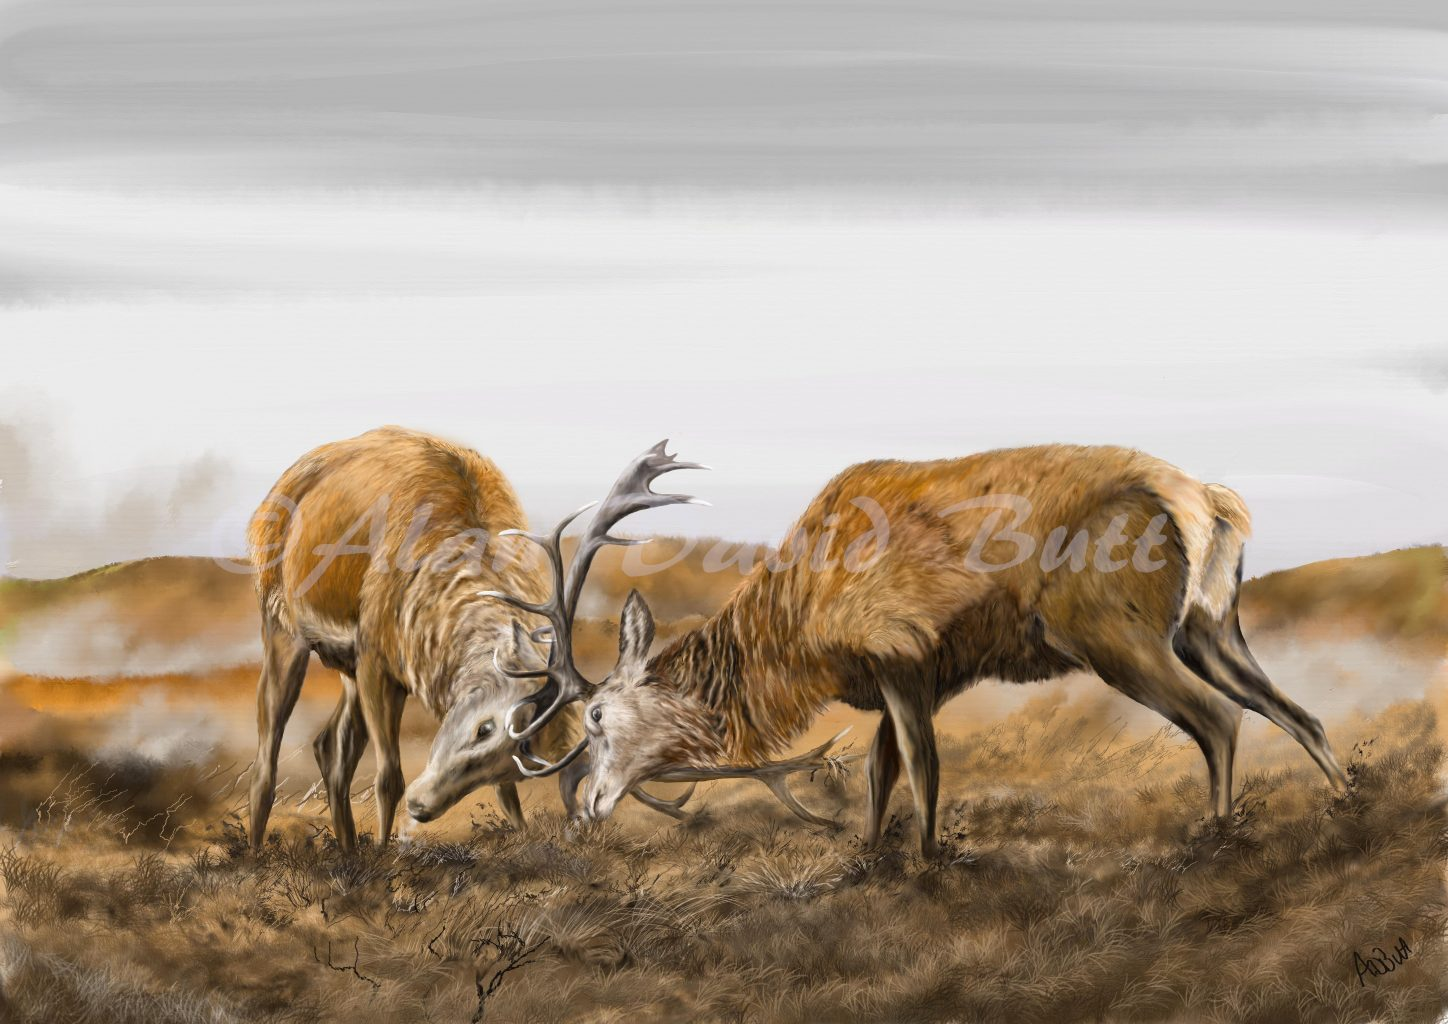 Two stags rutting